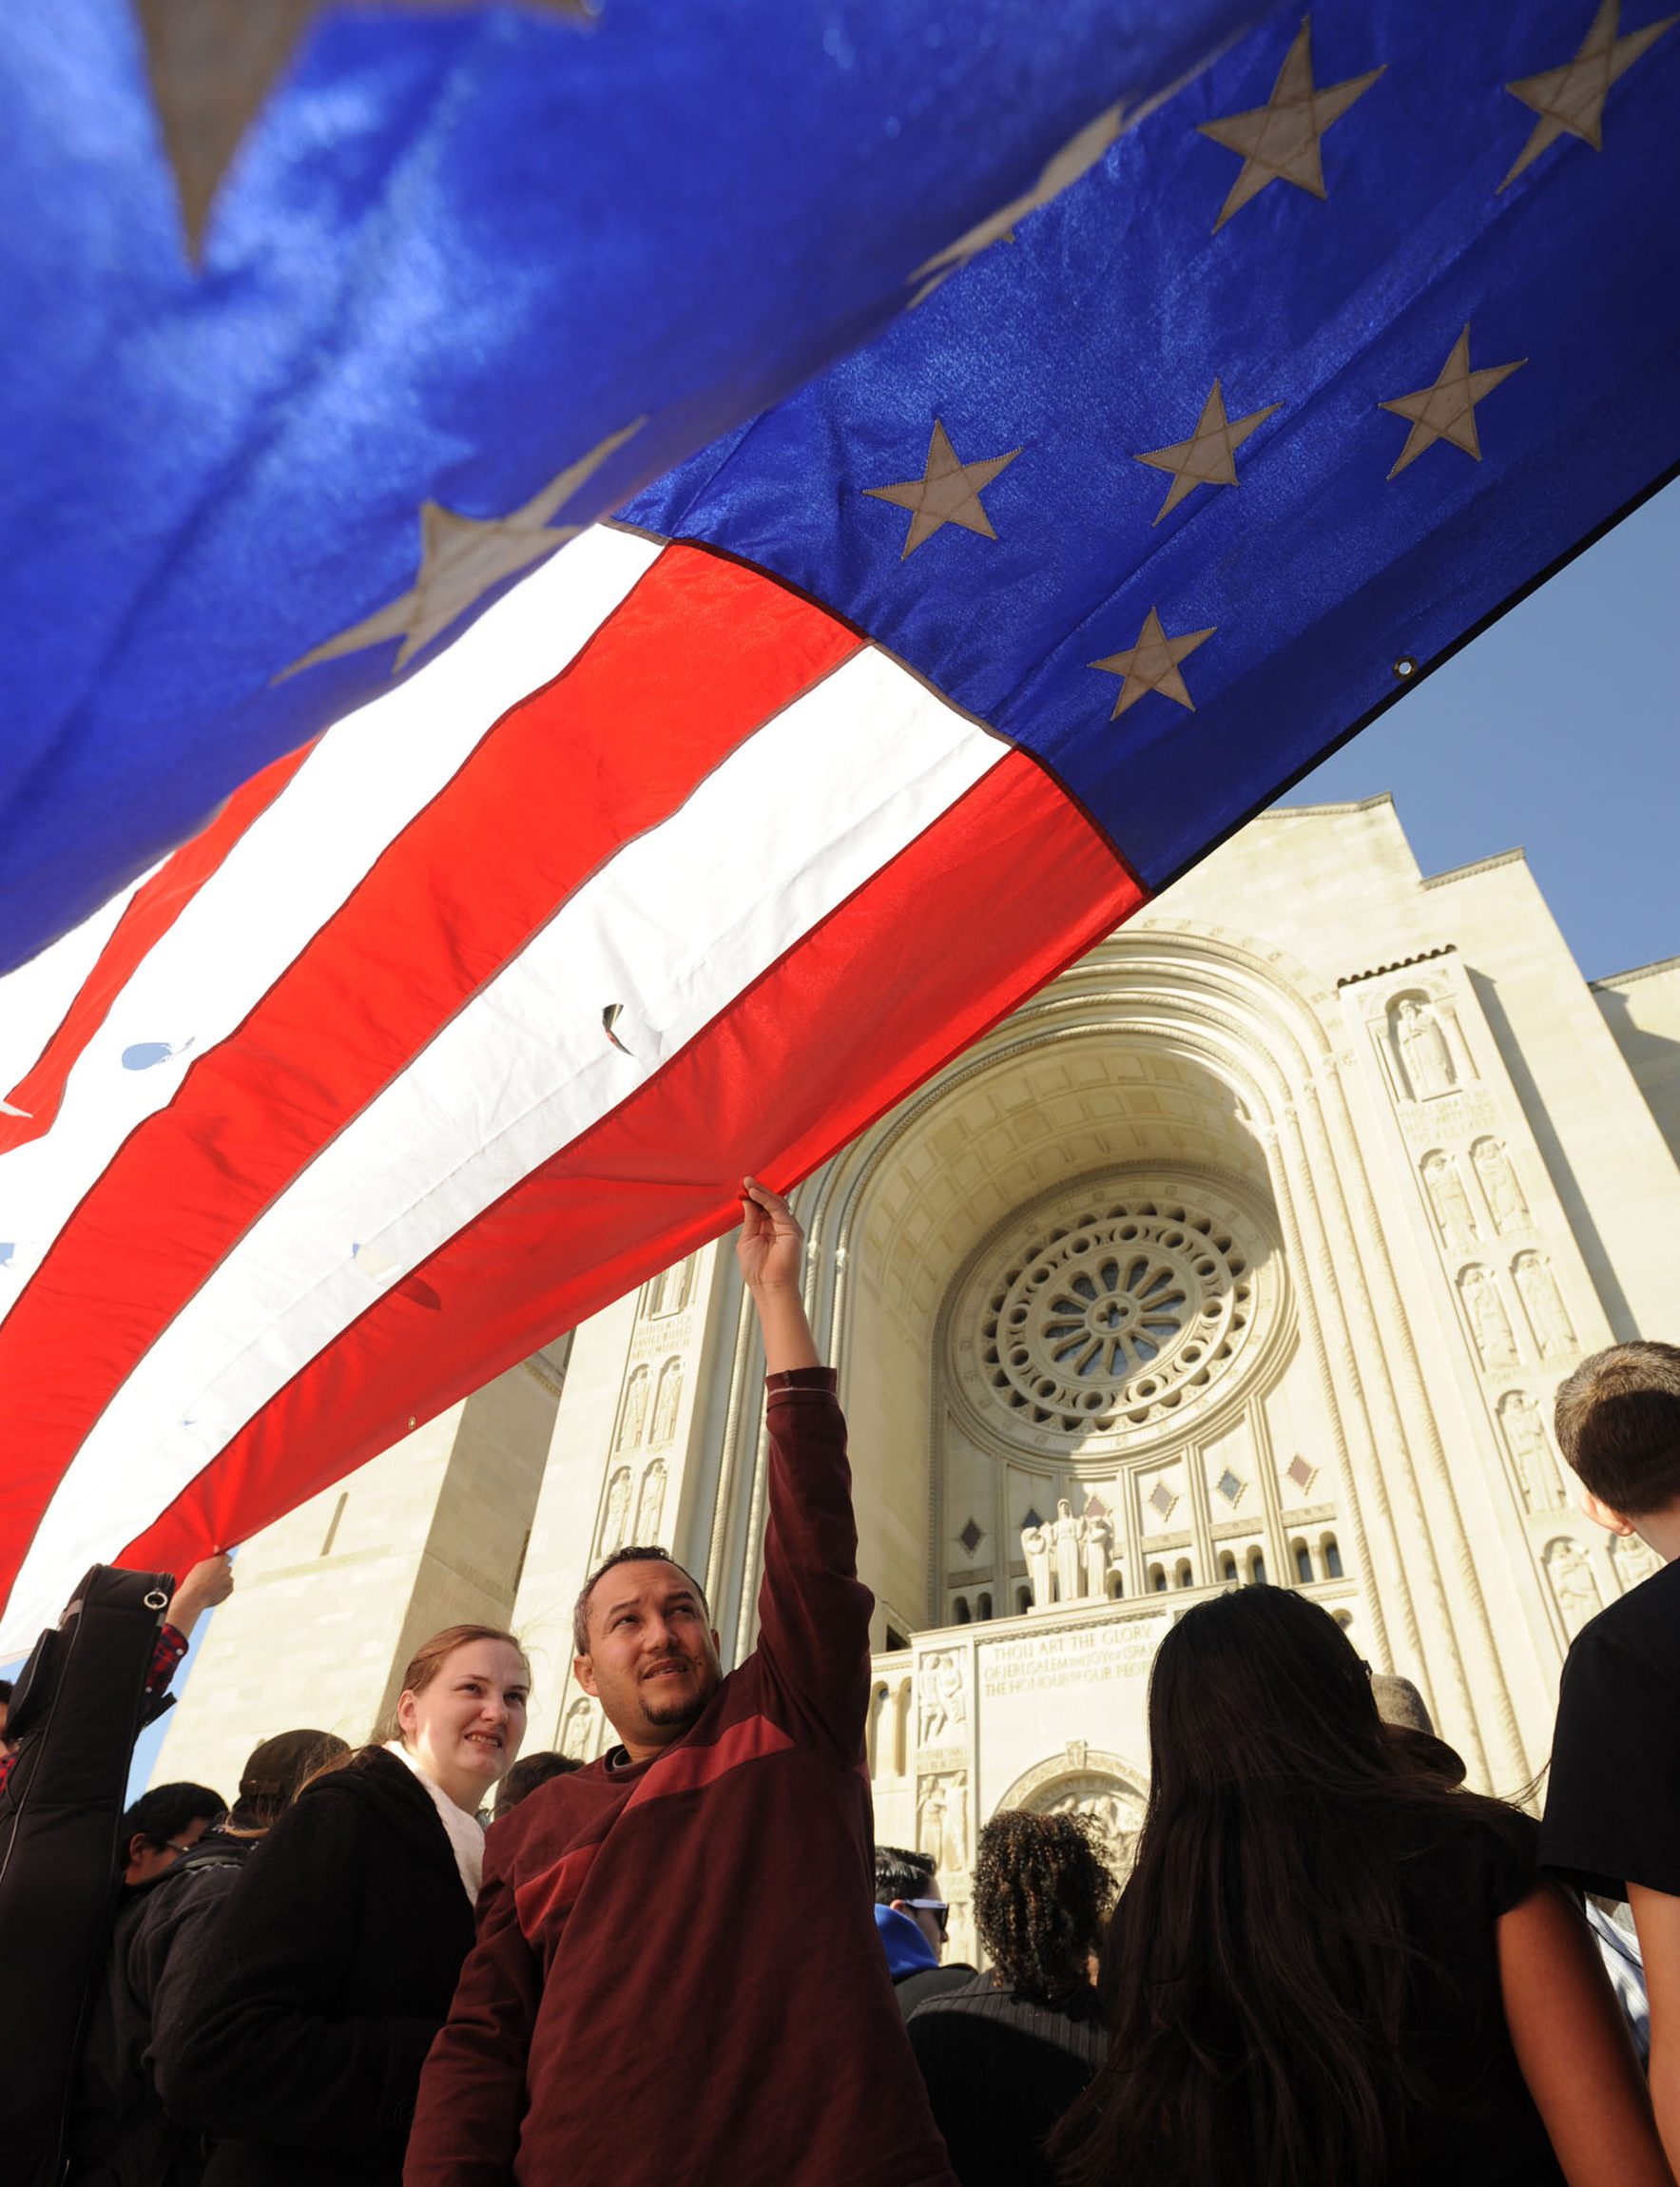 Secularism and social media advancing religious freedom and a man holds a large us flag before an oct 14 mass and pilgrimage for buycottarizona